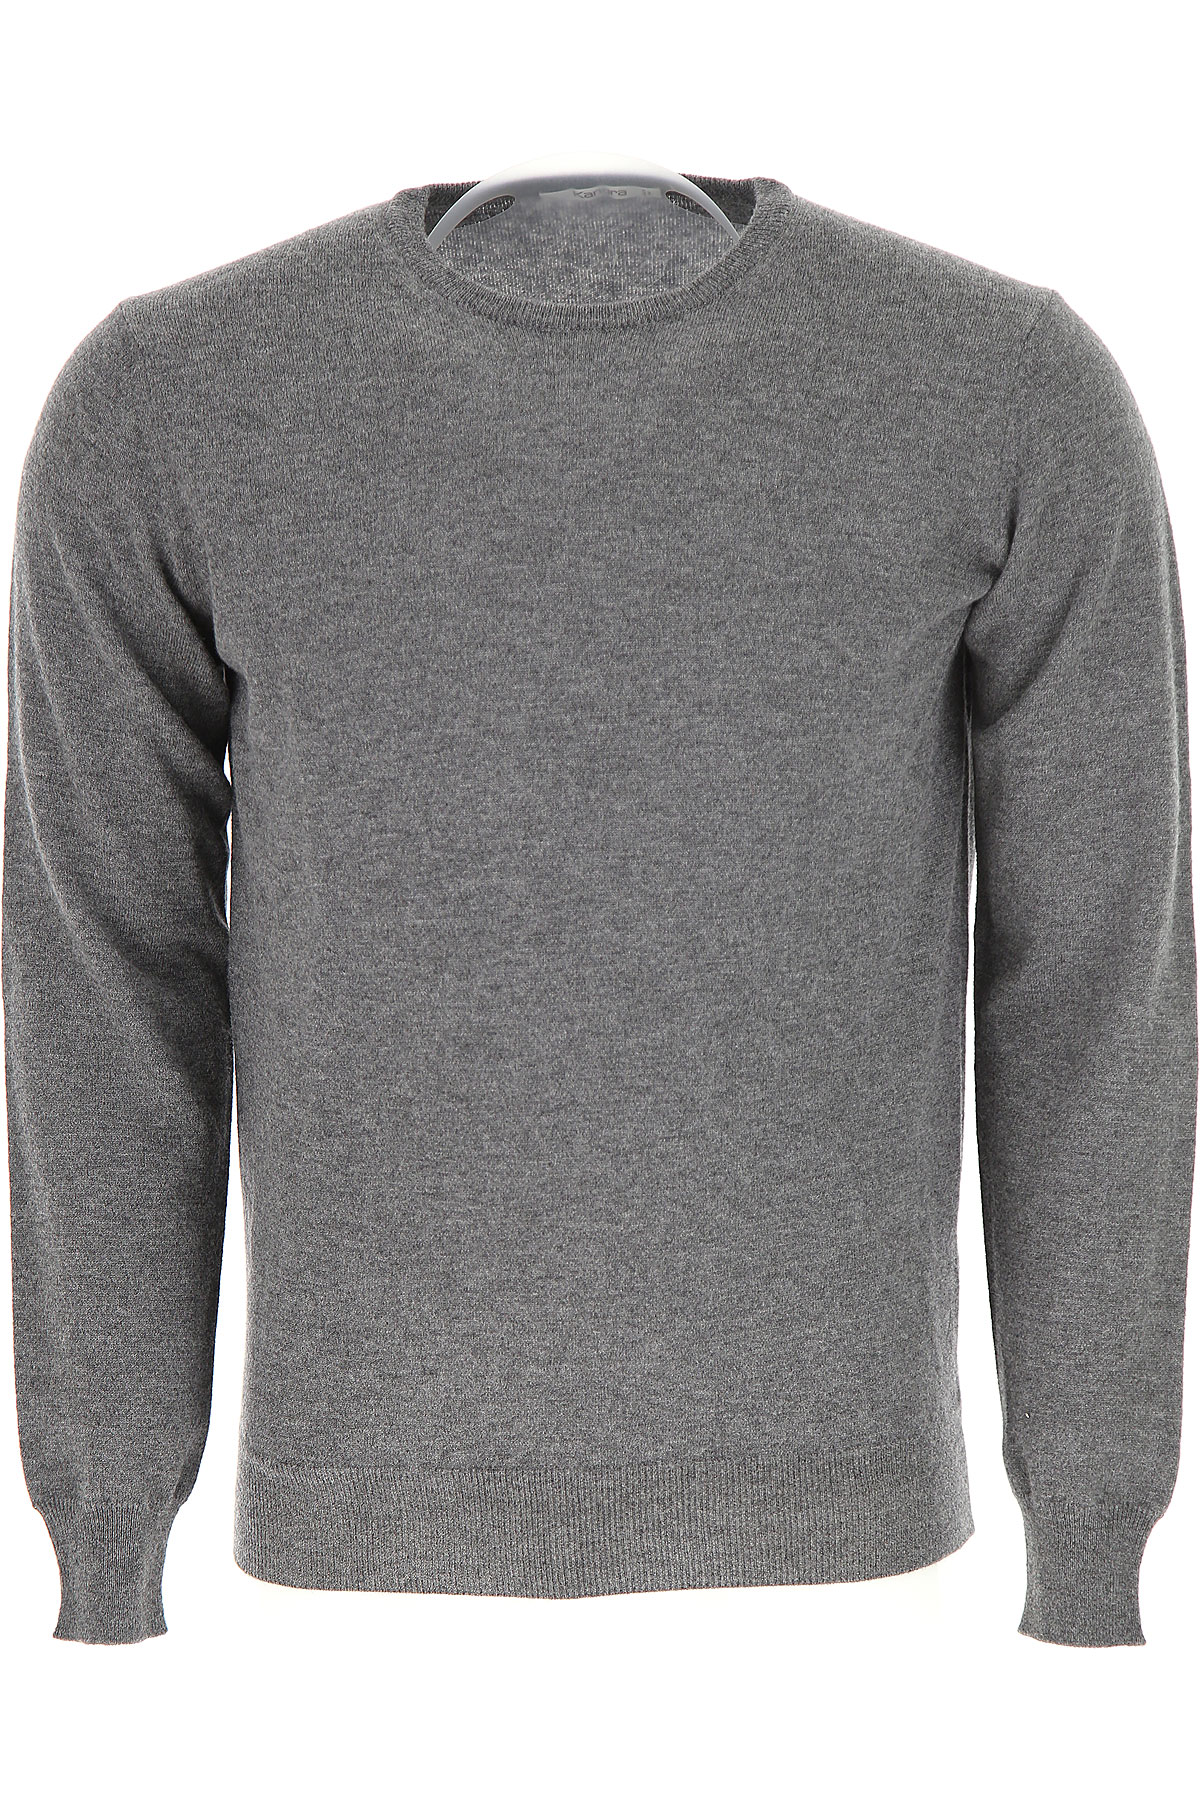 Image of Kangra Sweater for Men Jumper, antracite, Wool, 2017, XXXL